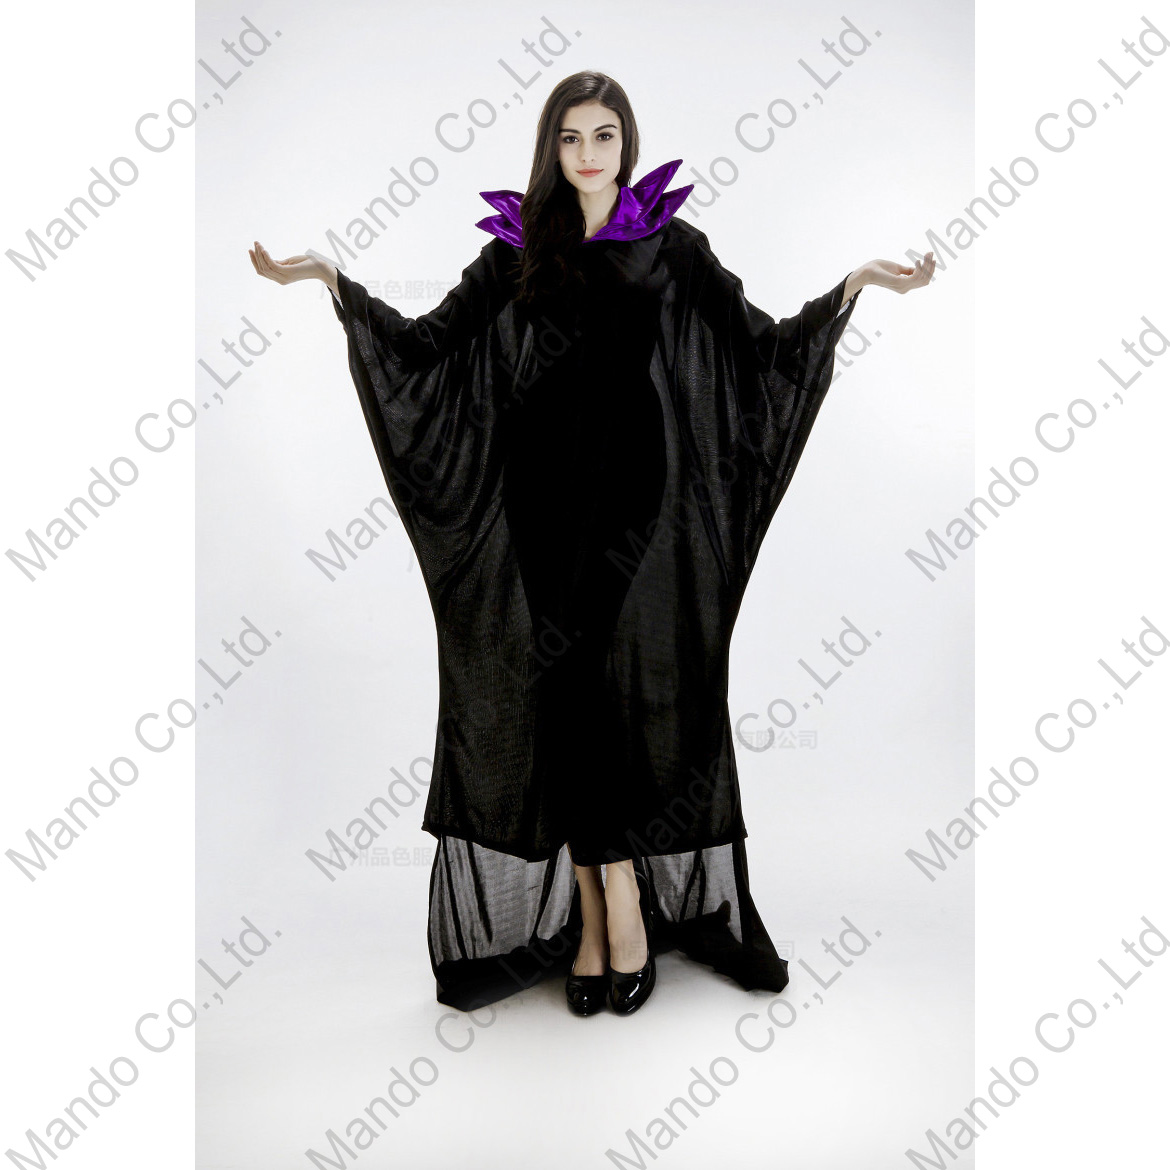 Women Carnival witch cosplay dresses Movie Maleficent Women Cosplay Black Cloak  halloween Black witch party costume